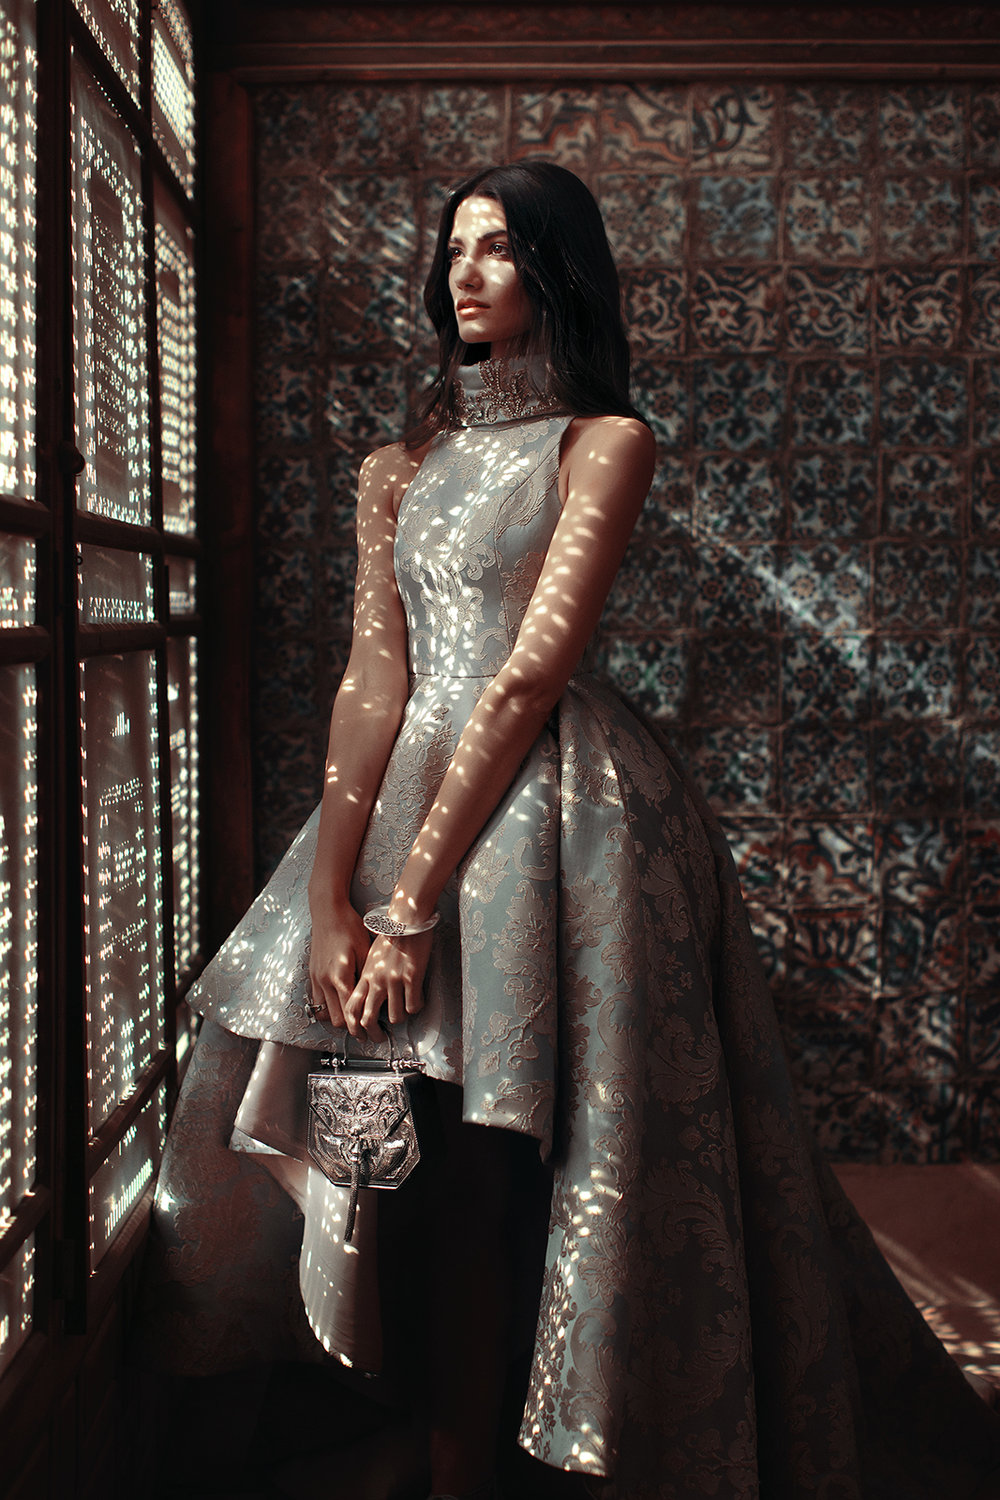 Published in Vogue Arabia Model: Tara Emad Styling: Lorand Lajos Bag: Okhtein Gown : Kojak Studio Cuff : Azza Fahmy Production: Maison Pyramide Photography and Art Direction: Bassam Allam Location: Beit Al Suhaimy, Cairo, Egypt